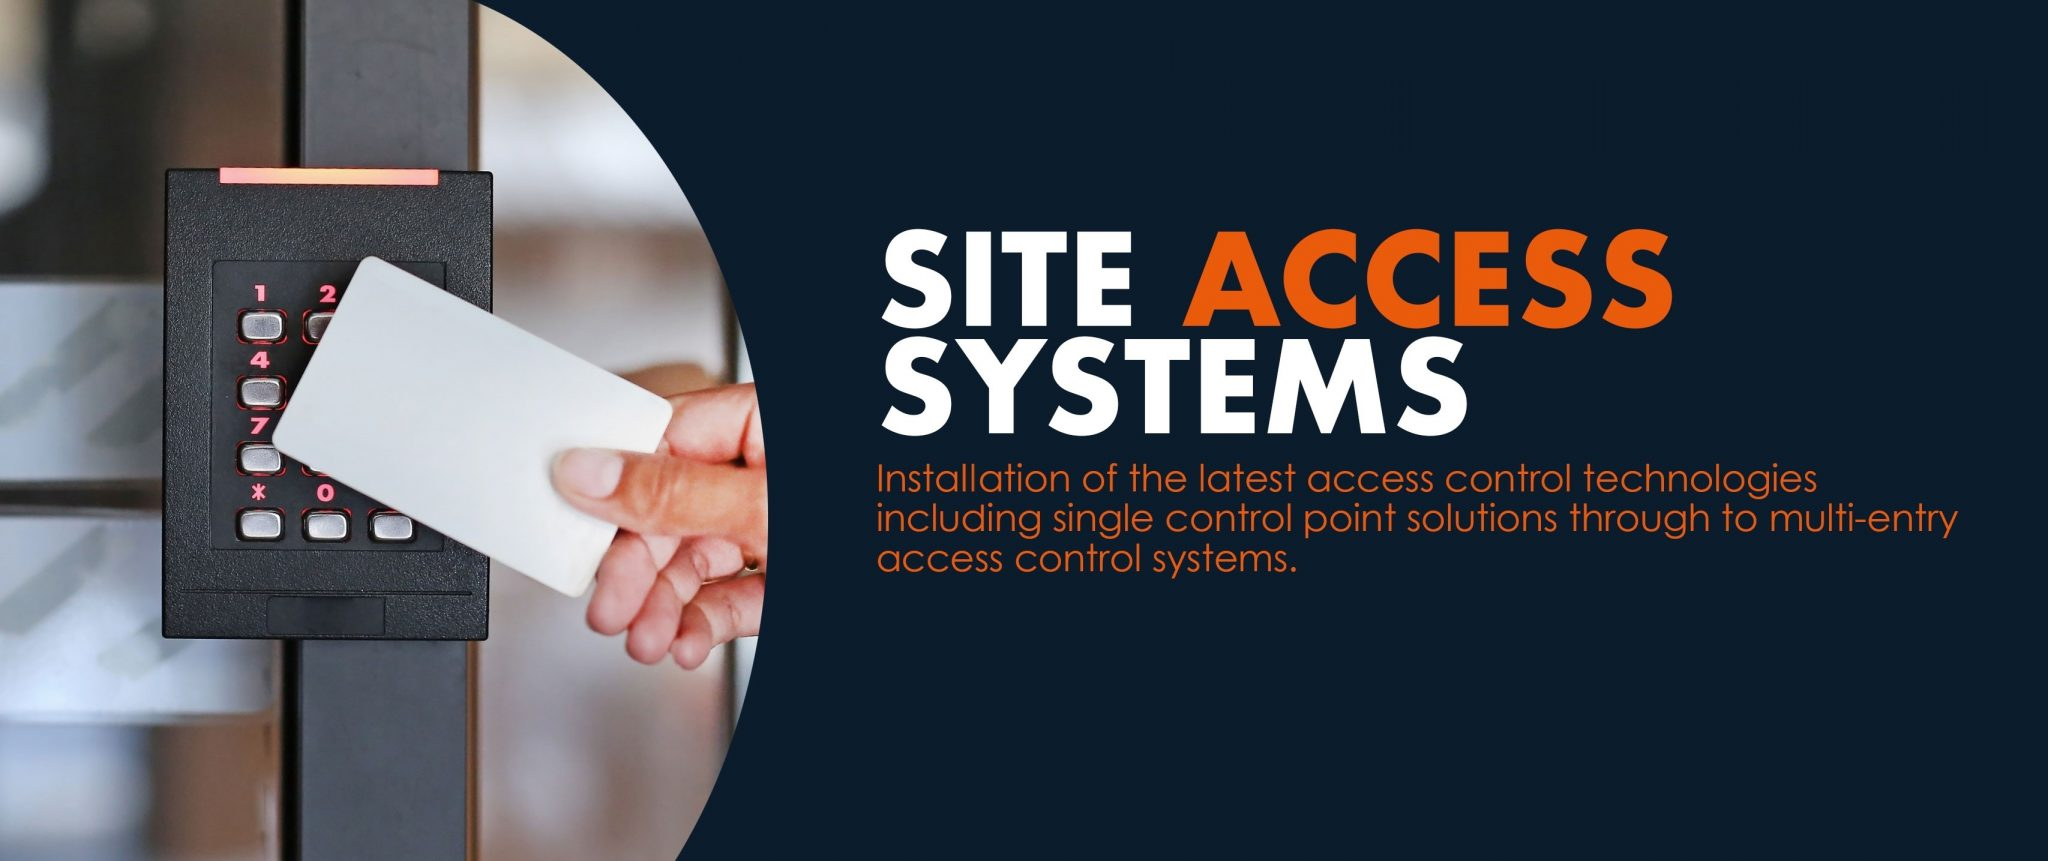 site access systems